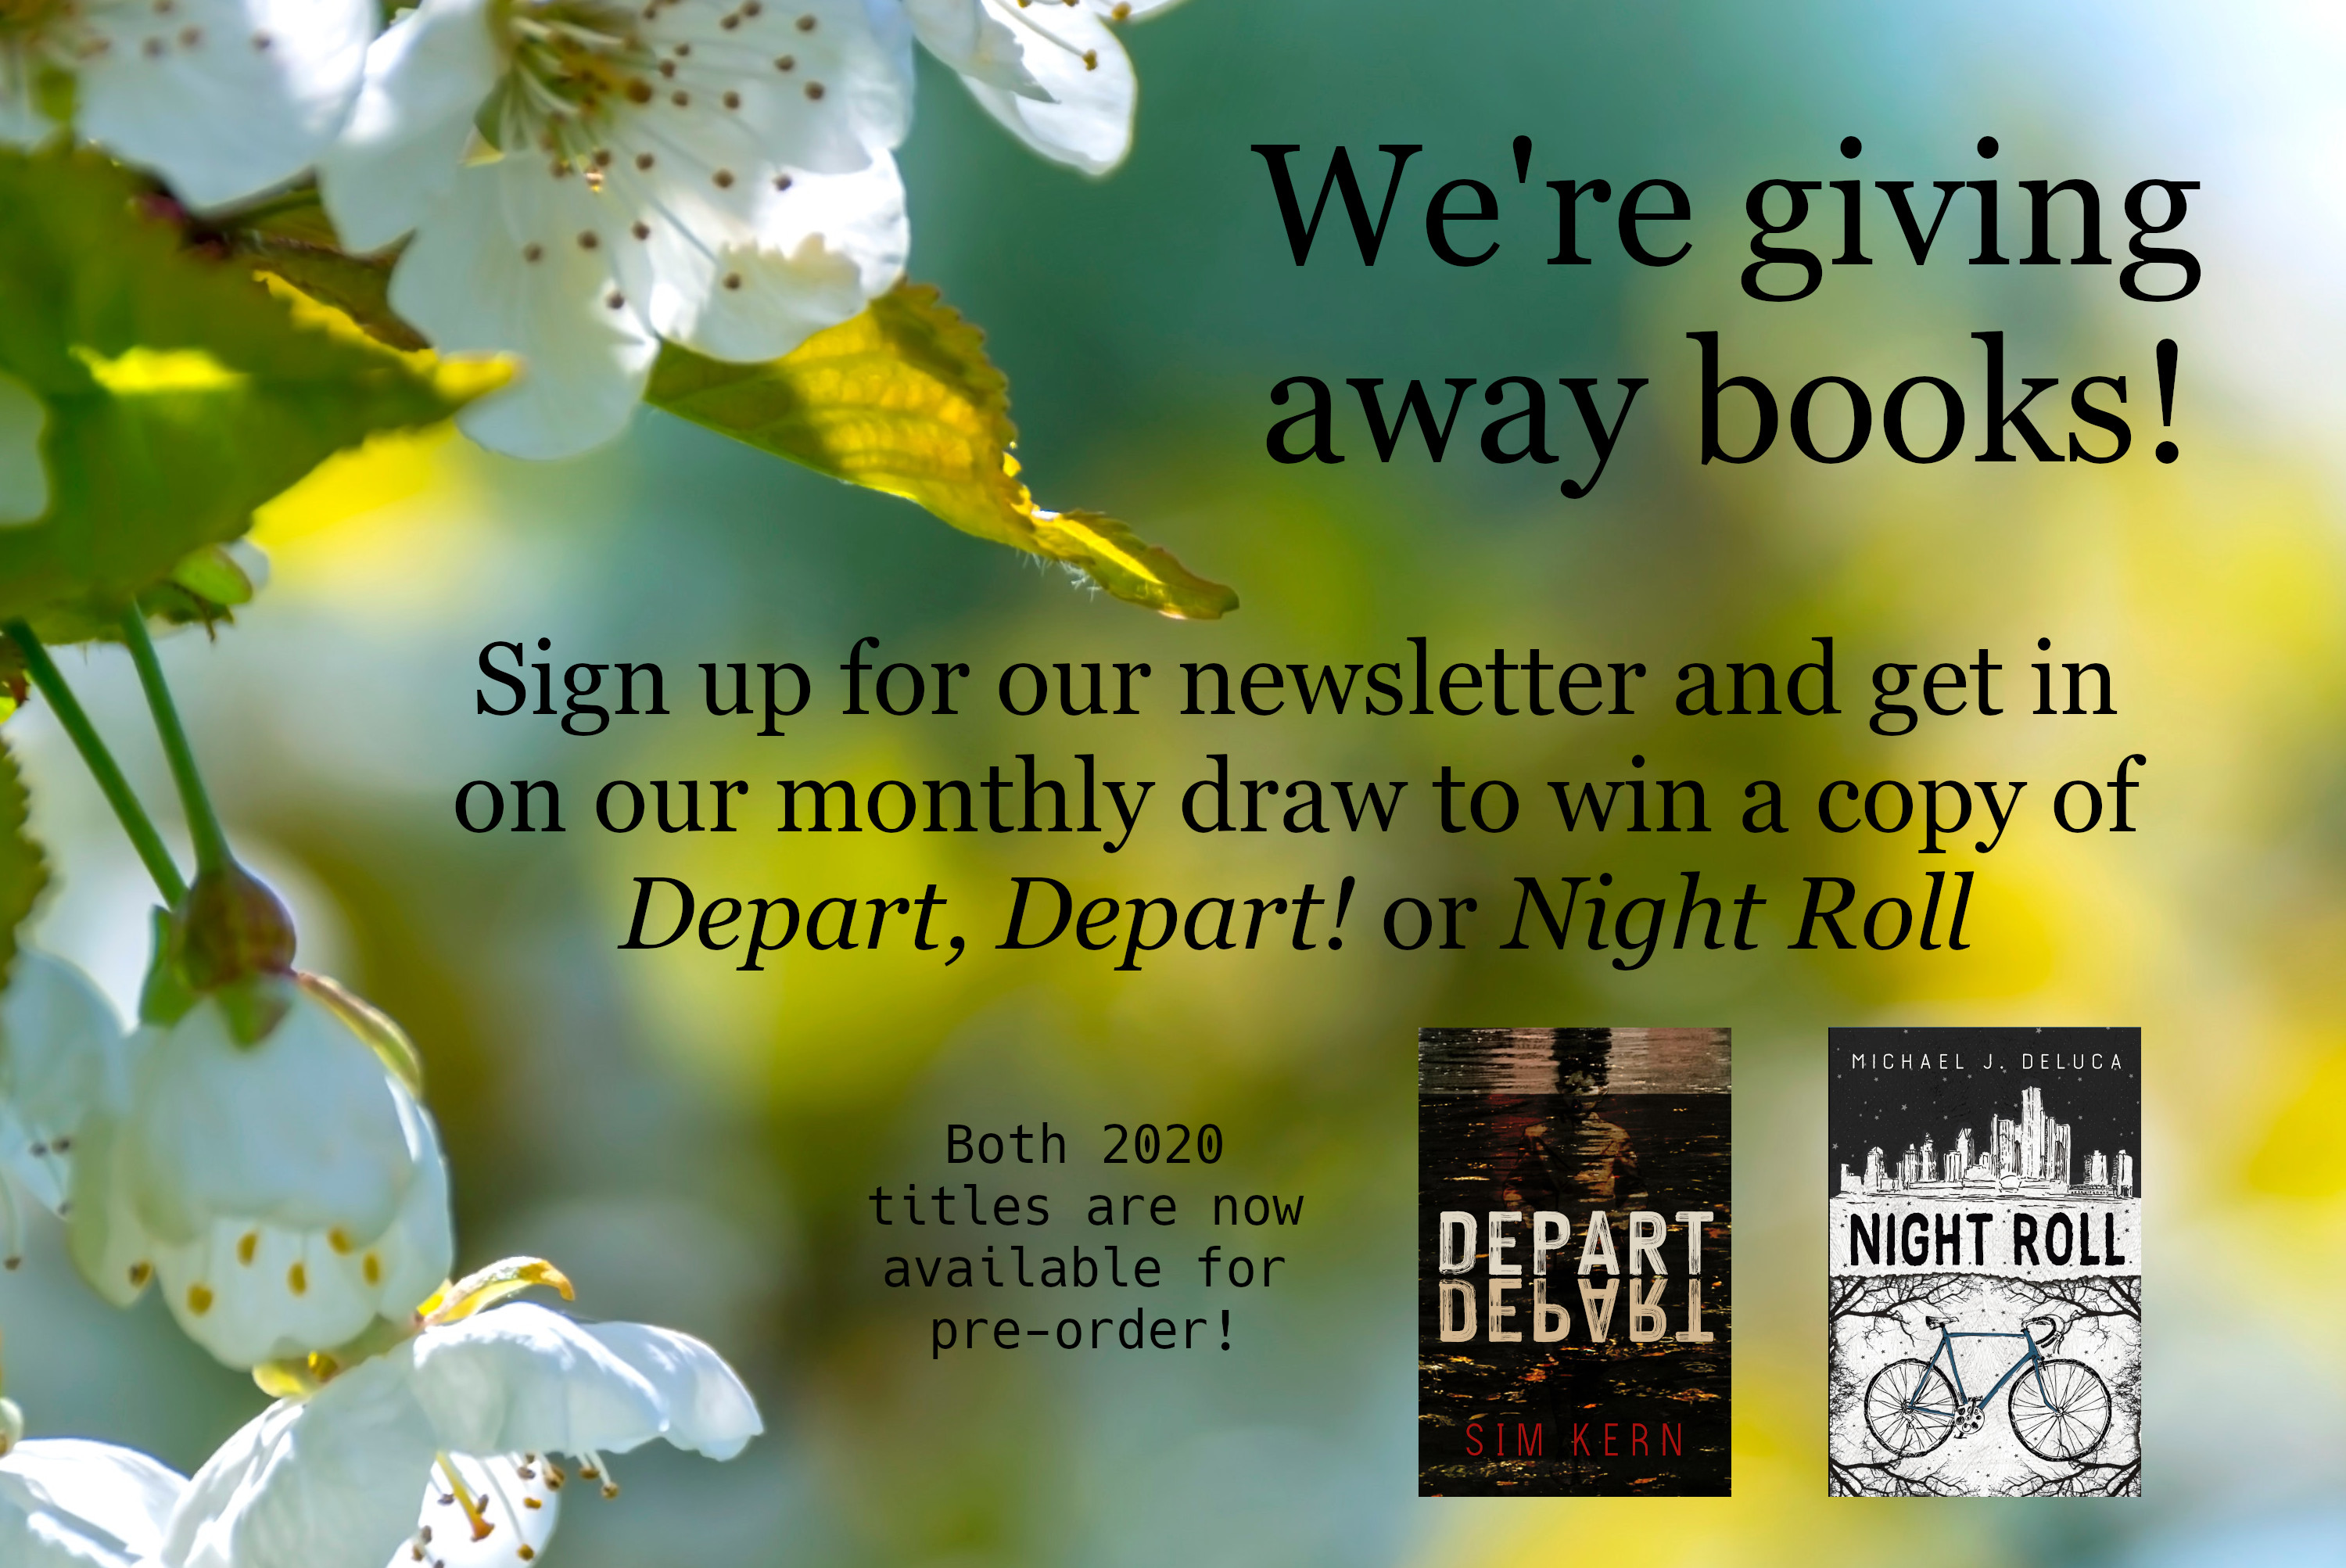 Image of apple blossoms with the text: We're giving away books! Sign up for our newsletter and get in on our monthly draw to win a copy of Depart, Depart! or Night Roll